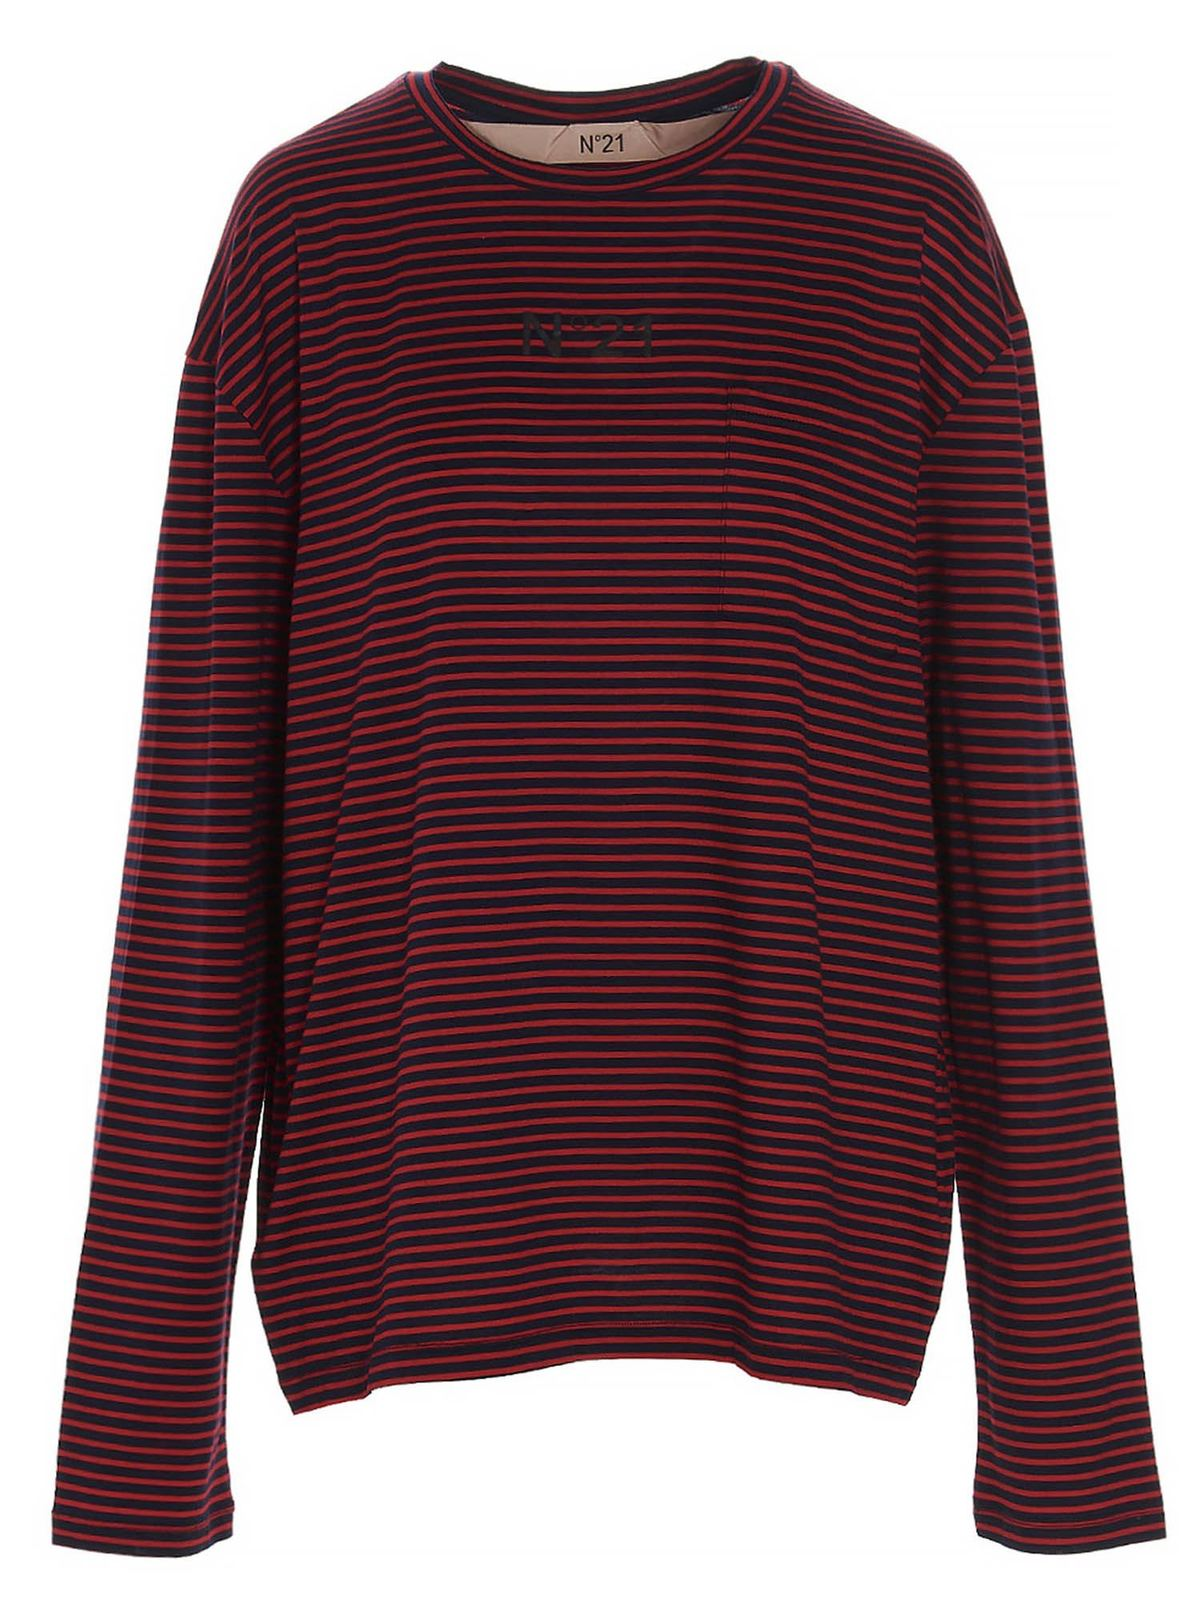 N°21 Cottons LOGO STRIPED T-SHIRT IN RED AND BLACK